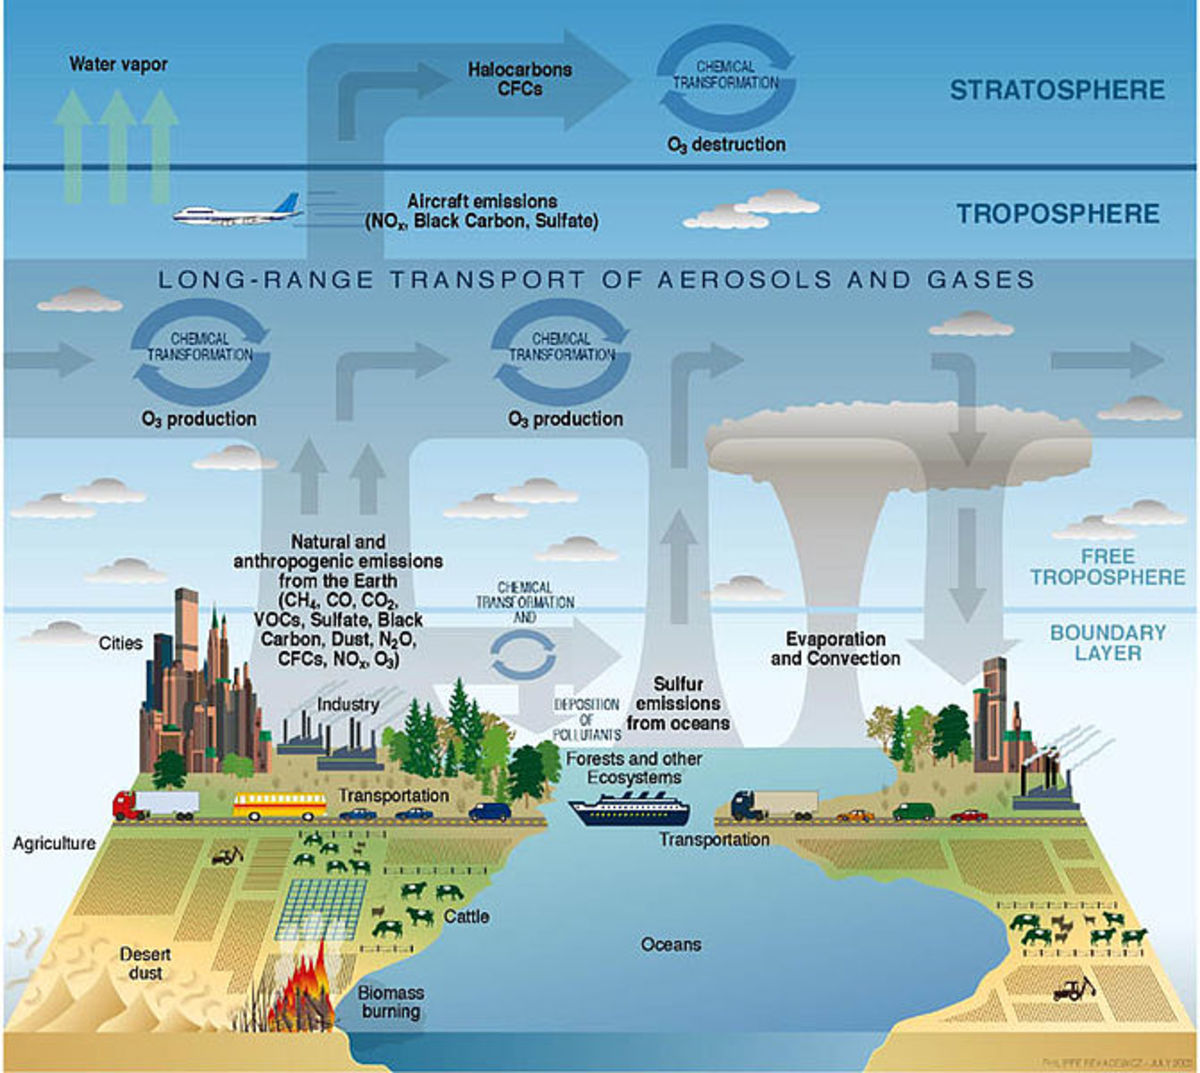 An image showing the composition and interactions of different layers in the earth's atmosphere